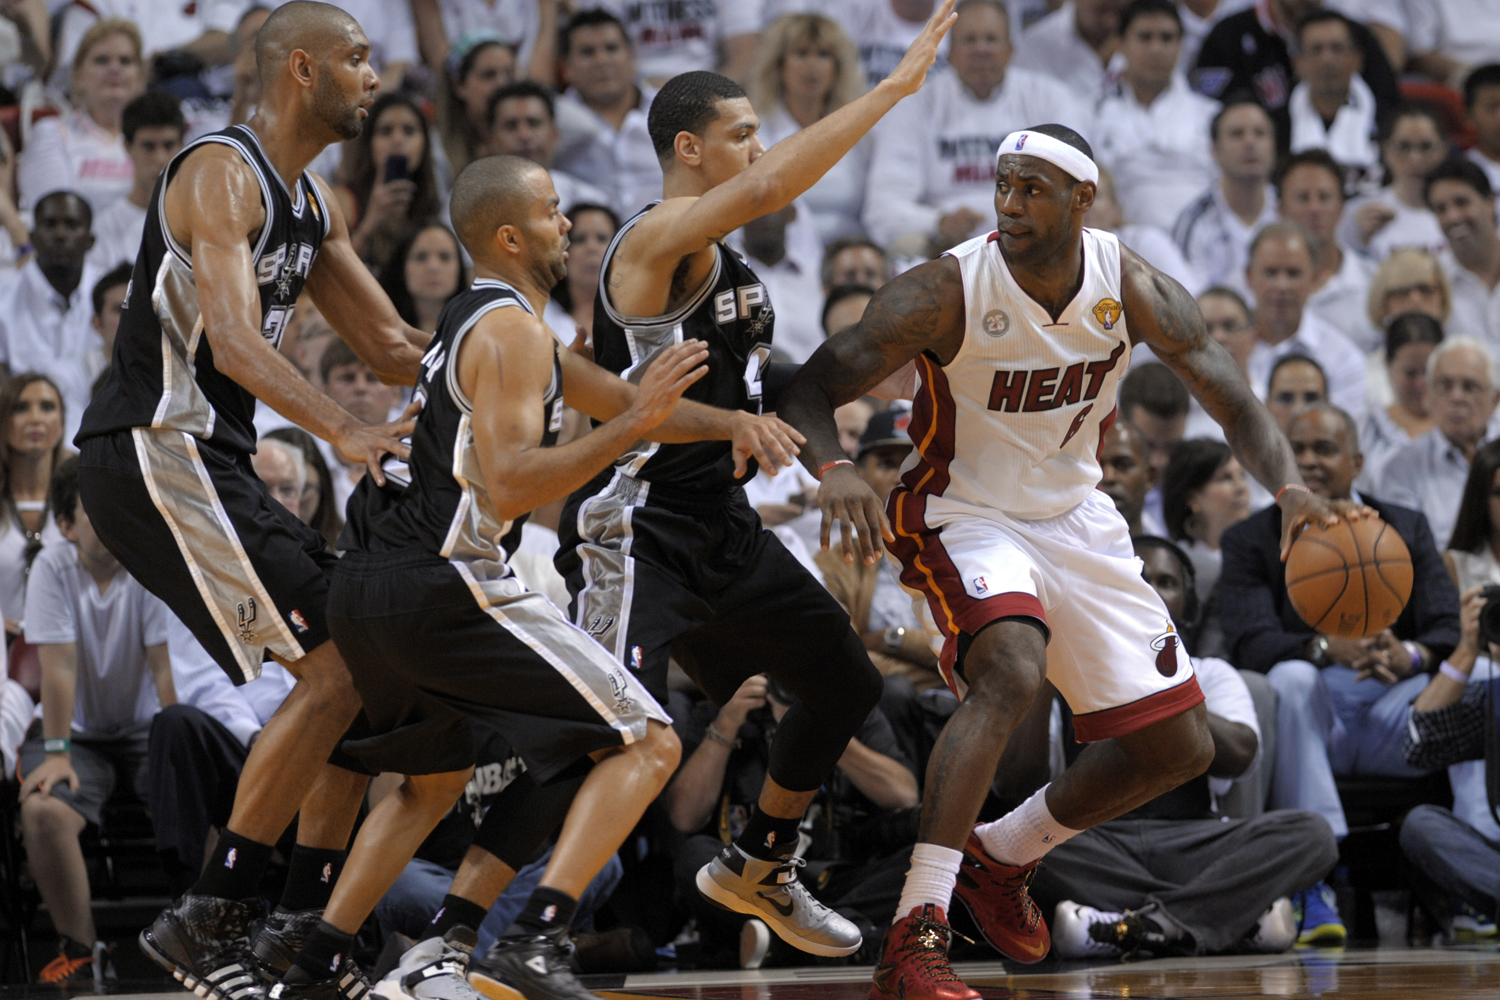 June 6, 2013. LeBron James (R) of the Miami Heat tries to navigate before the trio of Danny Green (3rd-L), Tony Parker (2nd-L) and Tim Duncan (L) of the San Antonio Spurs in the first half during Game One of the NBA Finals at American Airlines Arena in Miami, Florida.